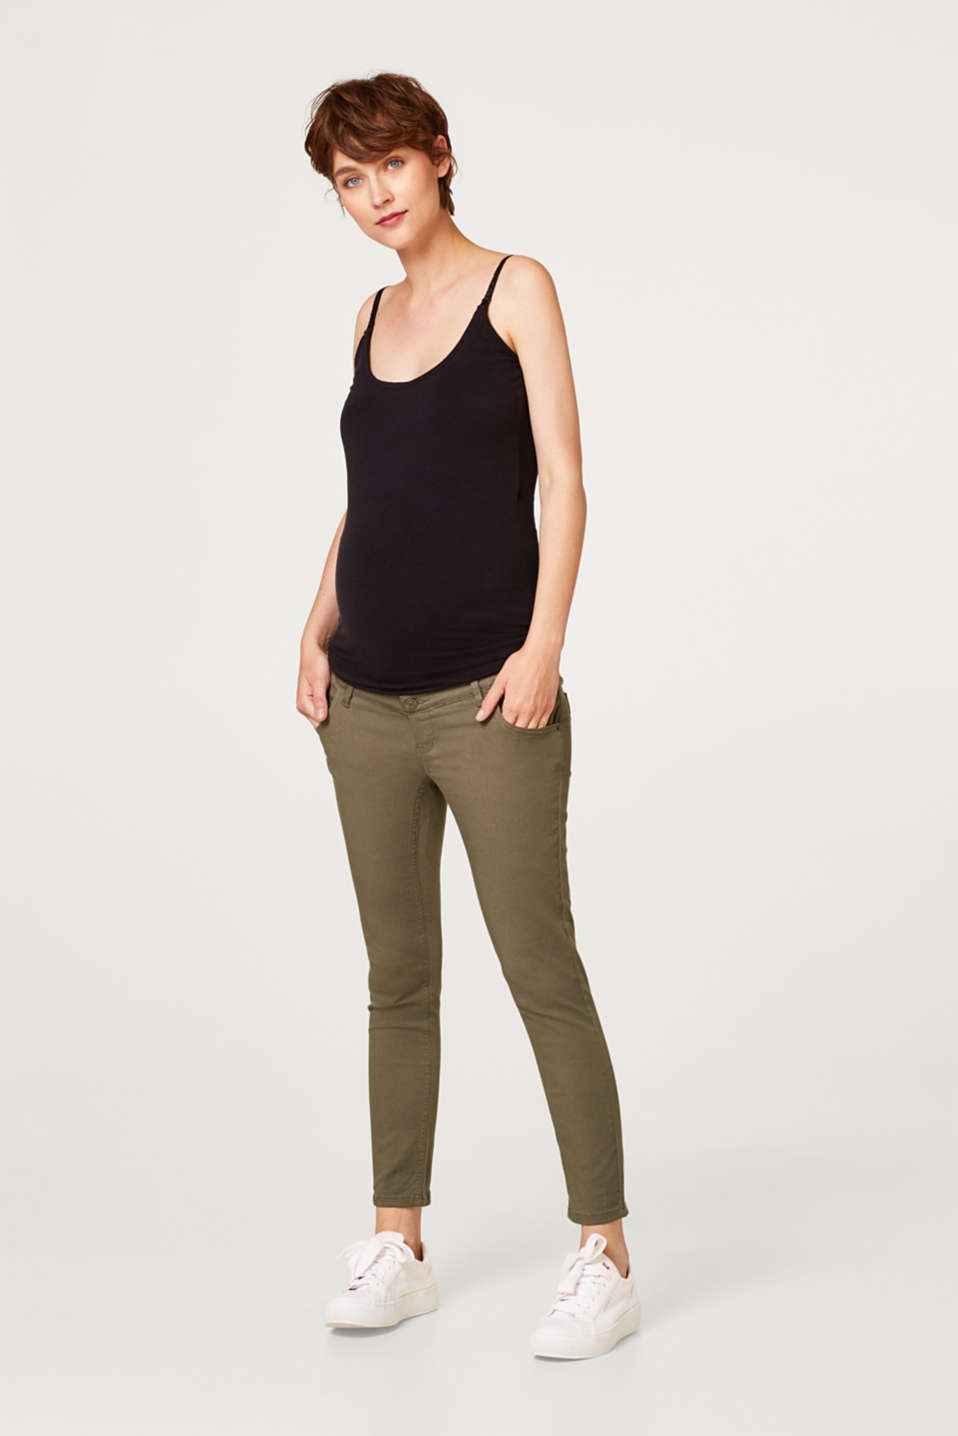 Pantalon stretch à ceinture de maintien ajustable